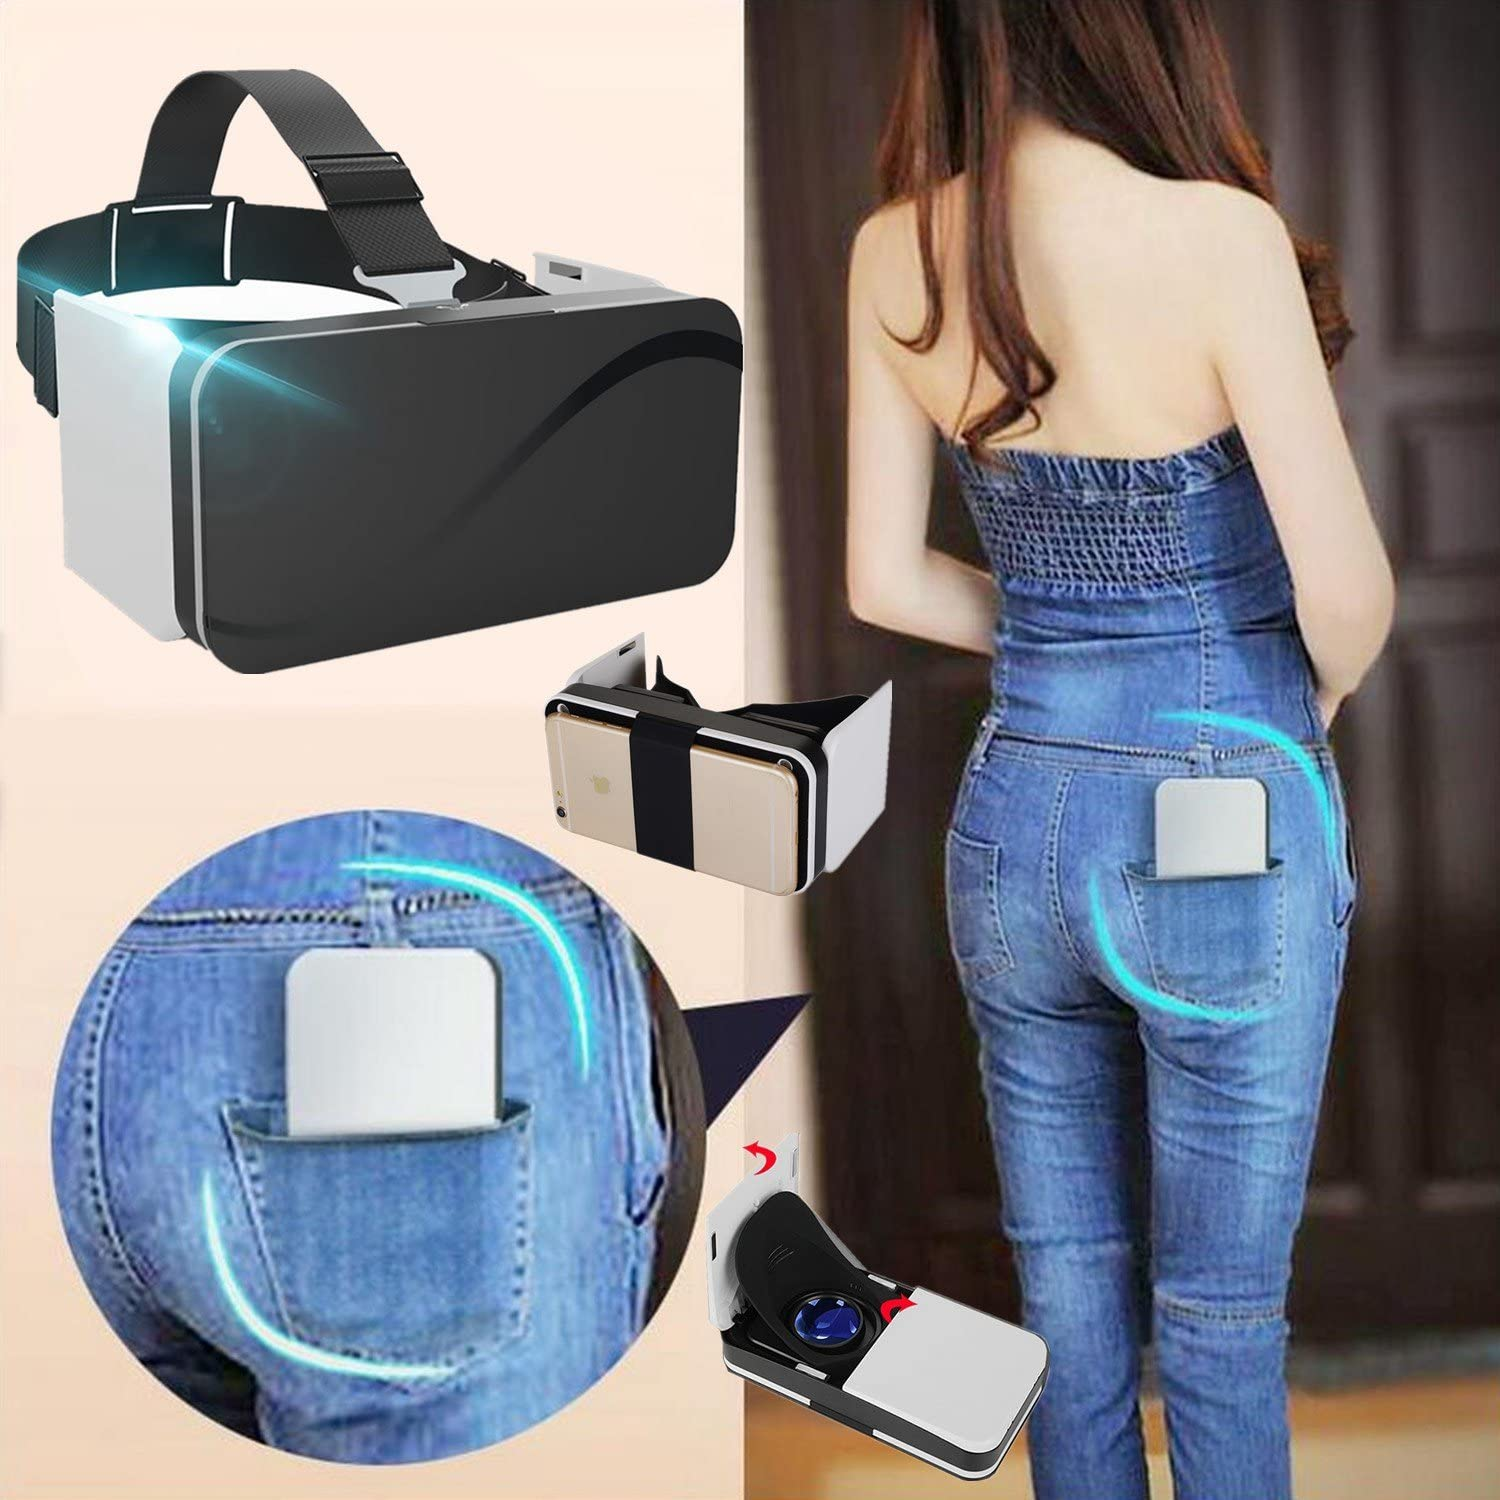 Is That a VR Headset in Your Pocket